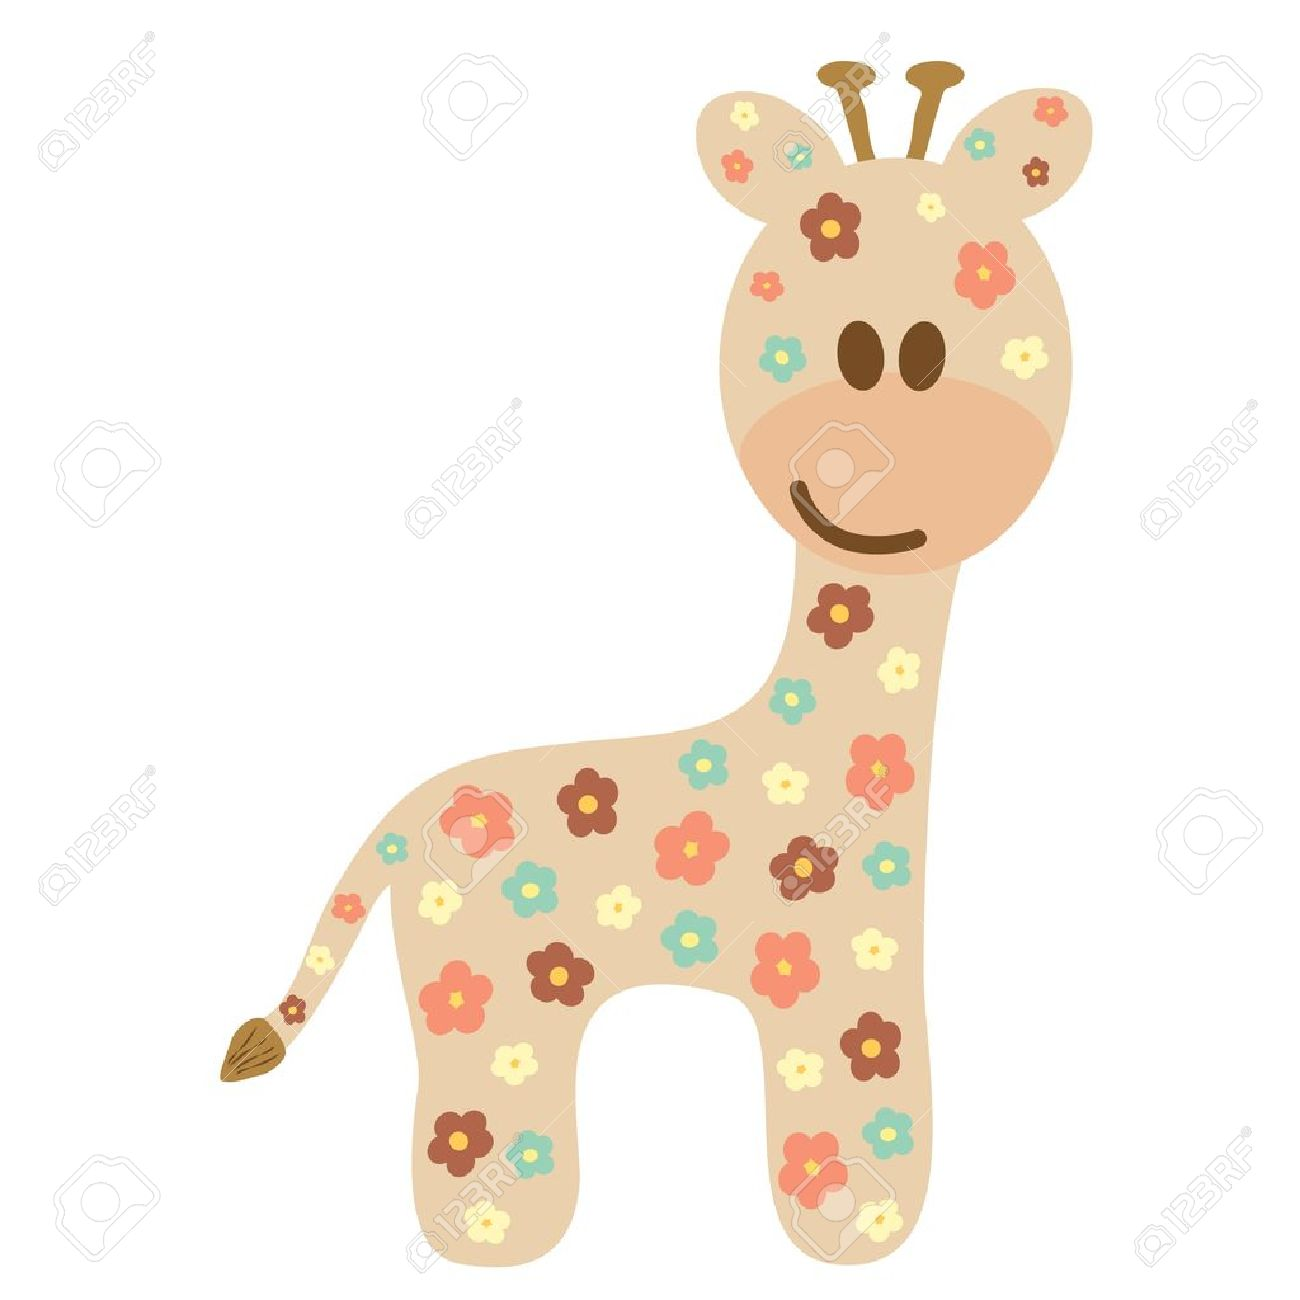 baby giraffe like a cute style royalty free cliparts vectors and